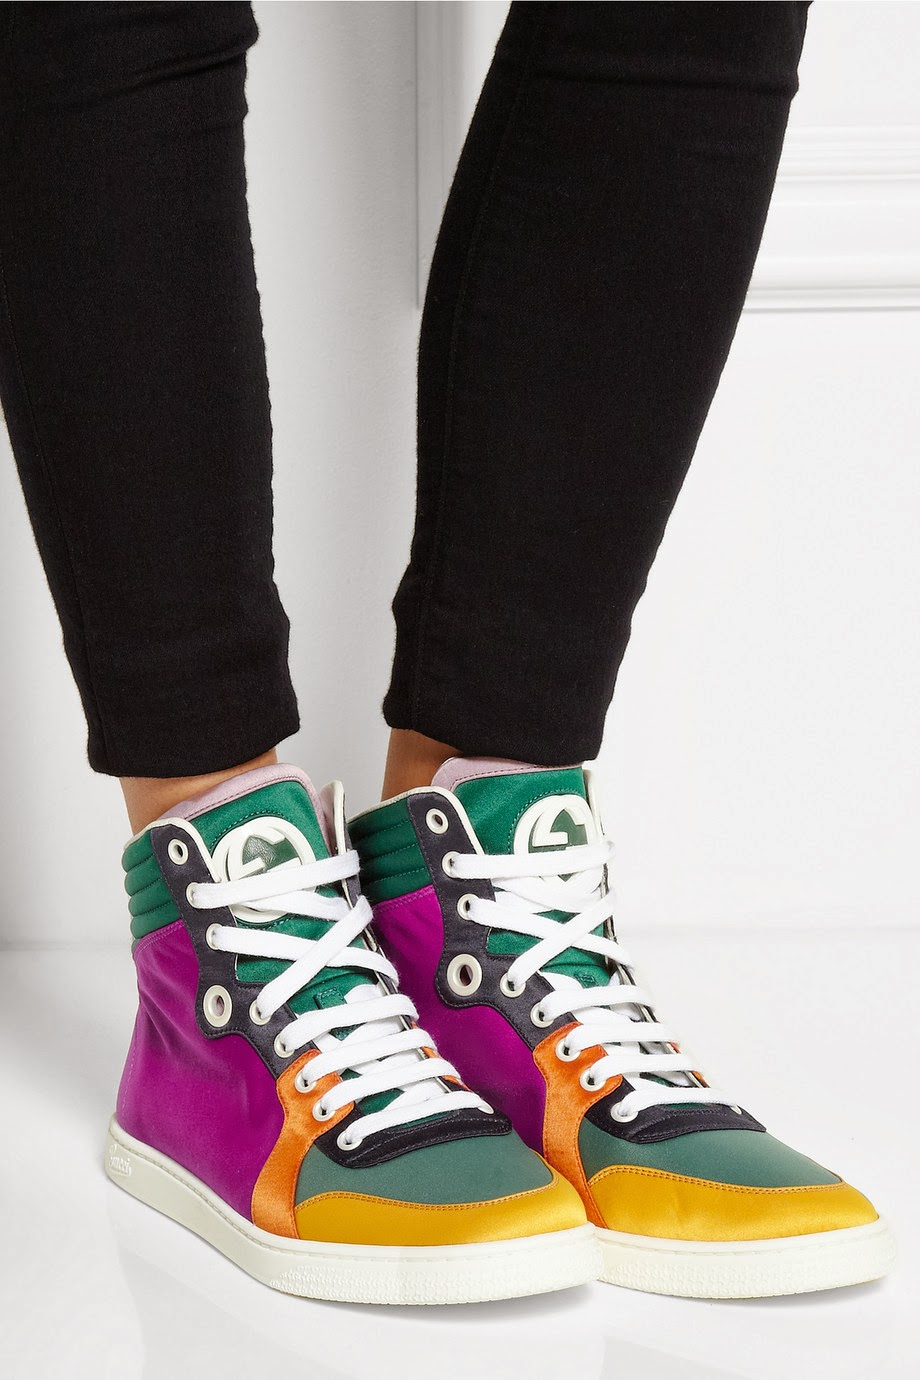 1ea57e8e8d4 If you are looking for a pair of really colorful flats